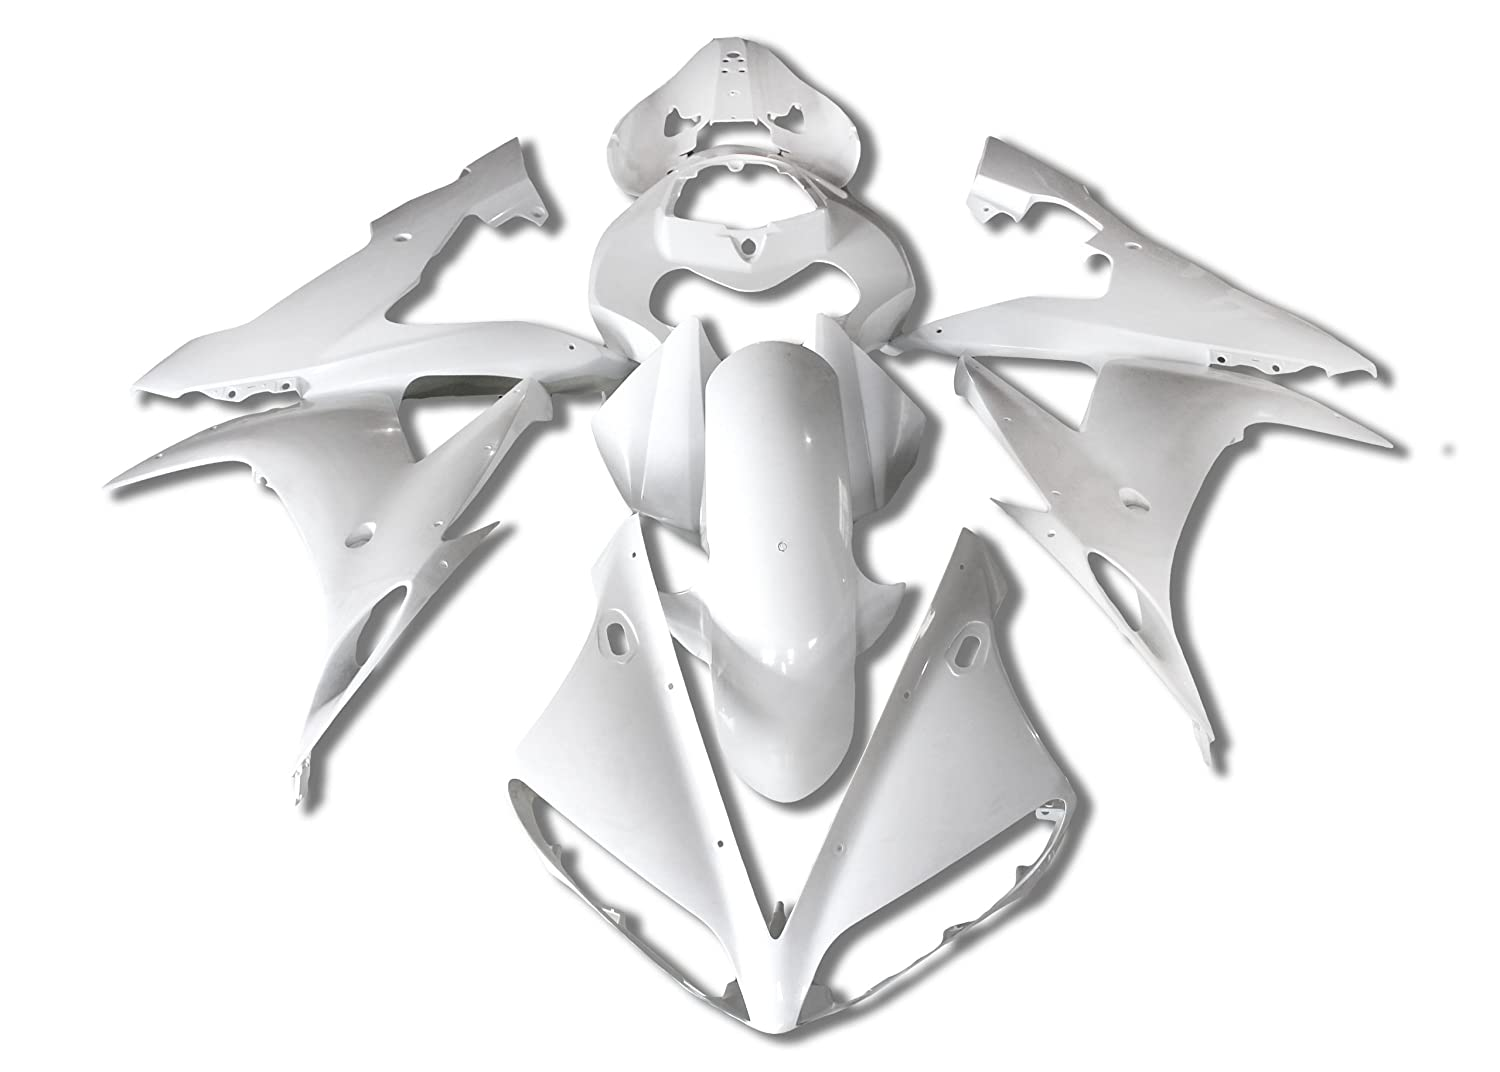 Yana Shiki BKY508UNP ABS Plastic Fairing Kit for Full Body